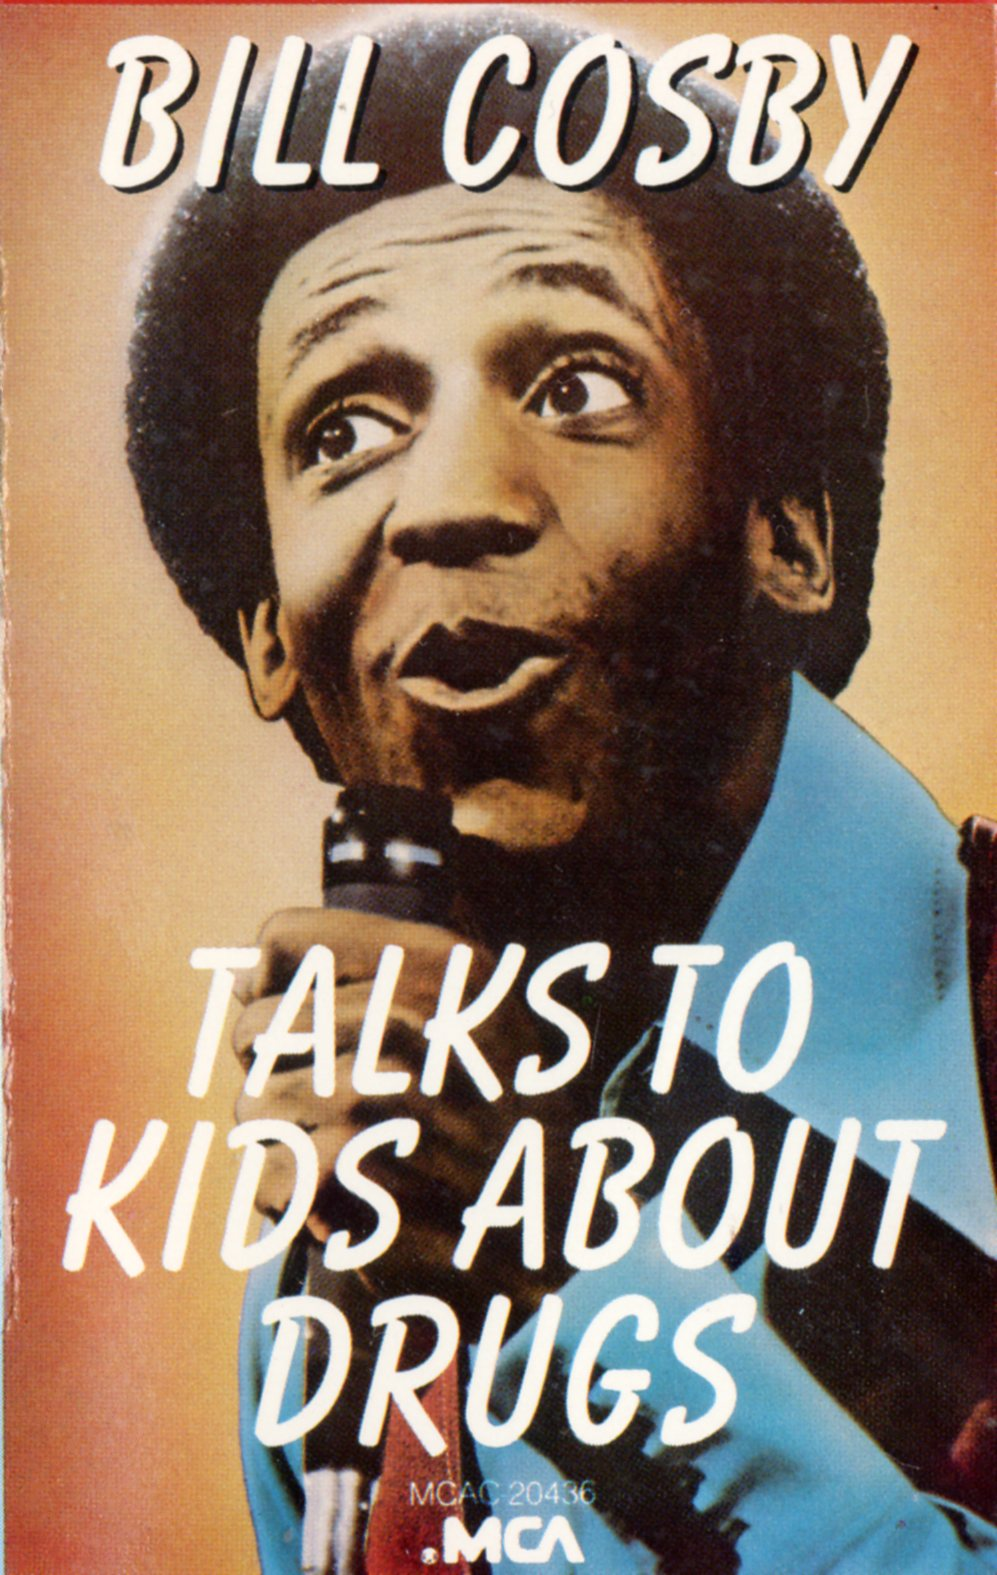 20436 - Bill Cosby Talks to Kids About Drugs on CD